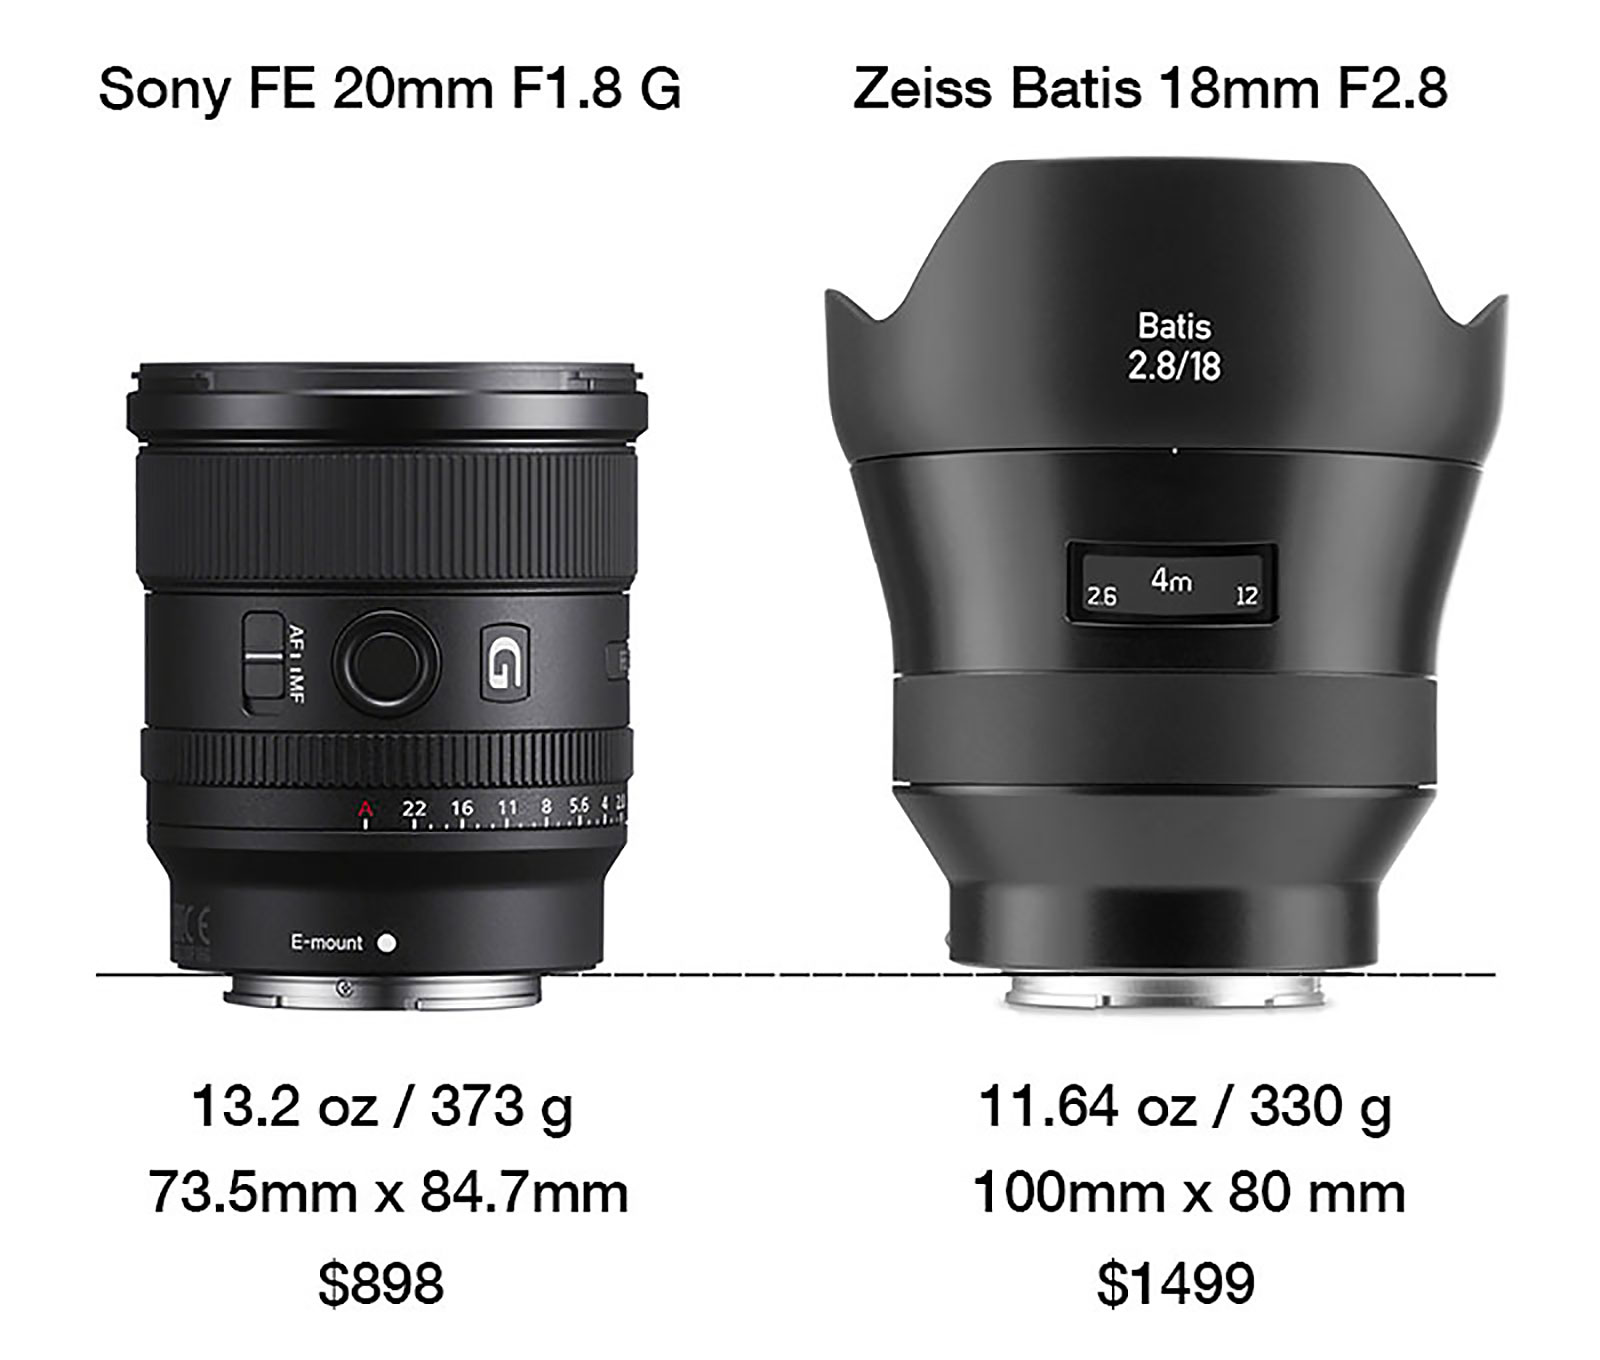 Sony FE 20mm F1.8 G compared to Zeiss Batis 18mm F2.8